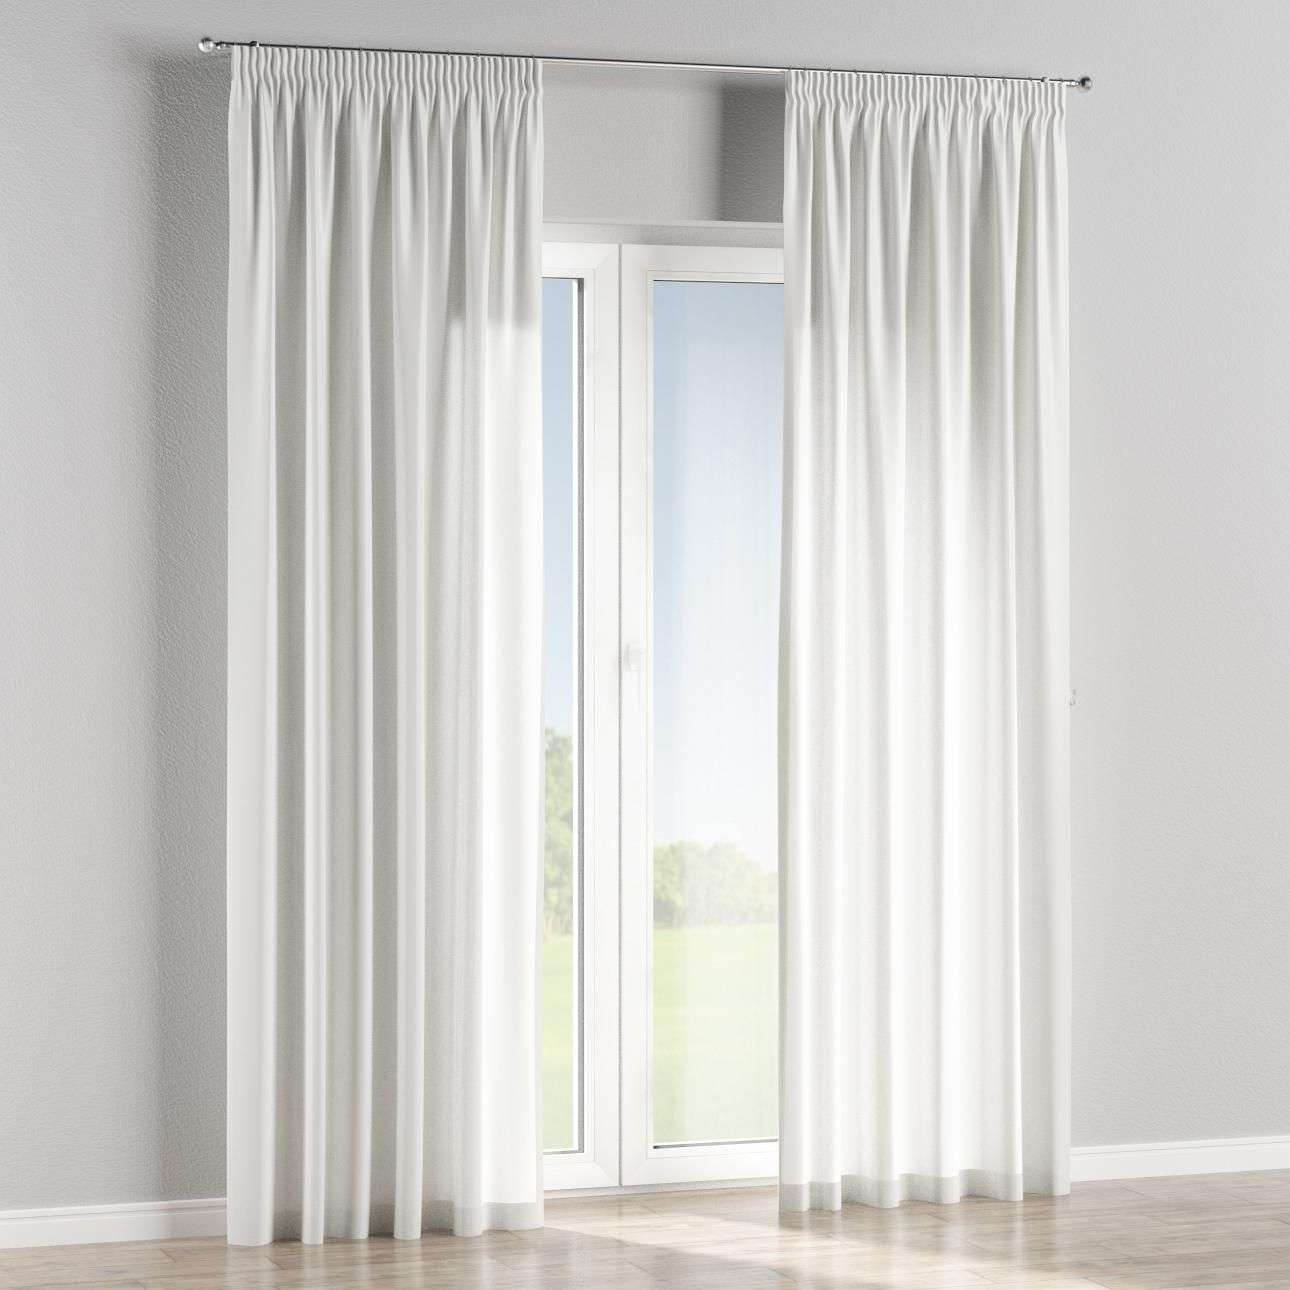 Pencil pleat curtains in collection Norge, fabric: 140-84